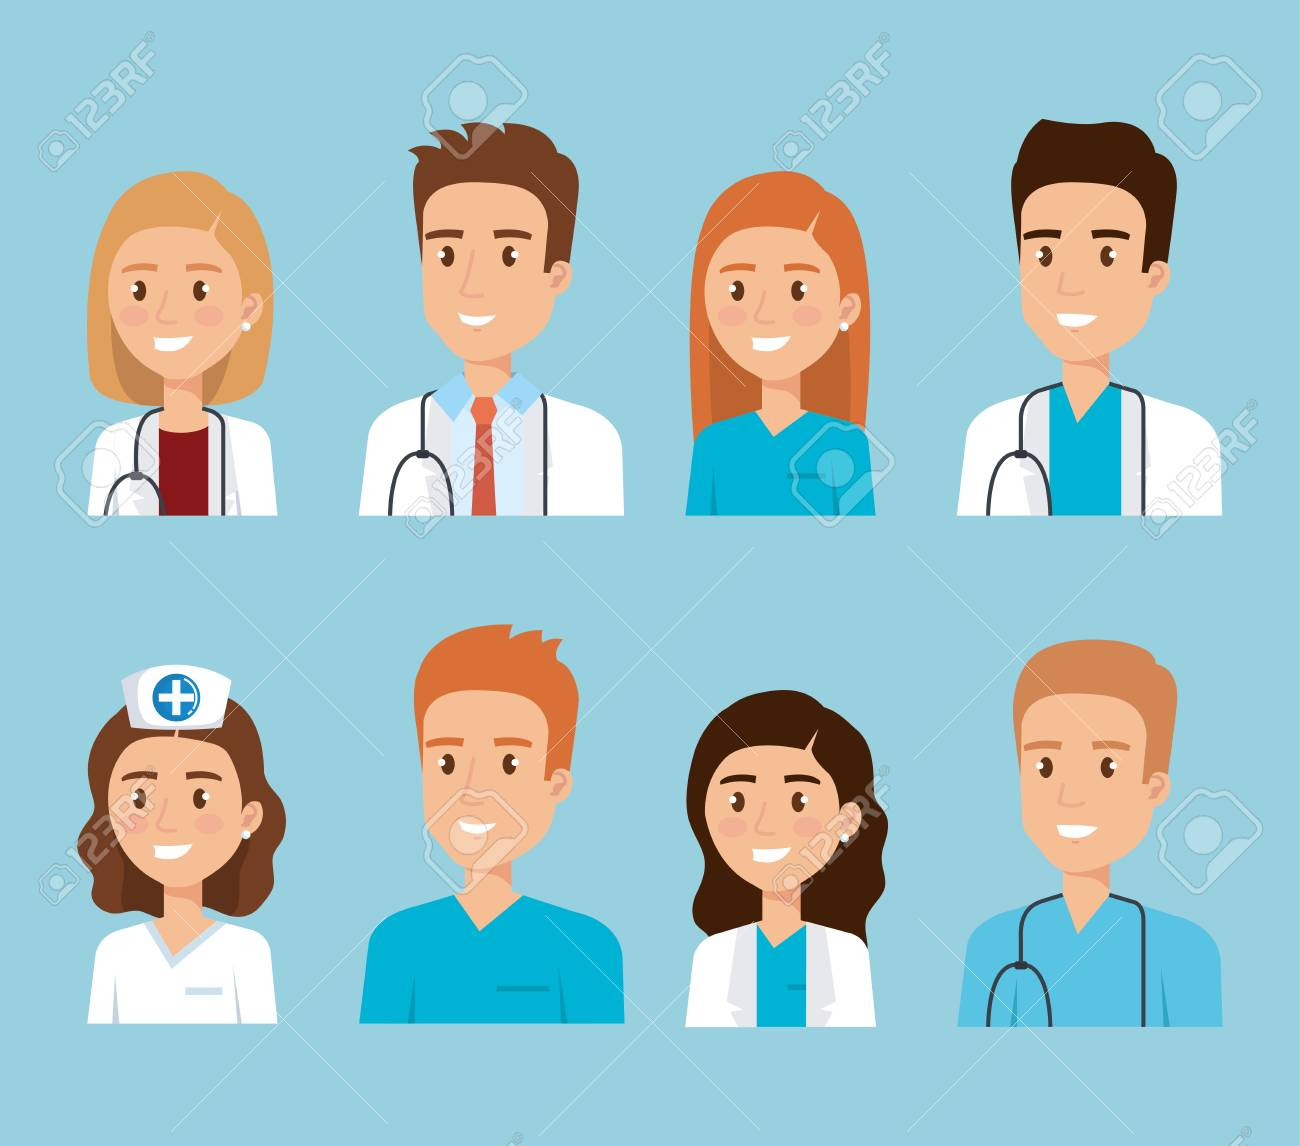 healthcare medical staff characters vector illustration design - 114876854